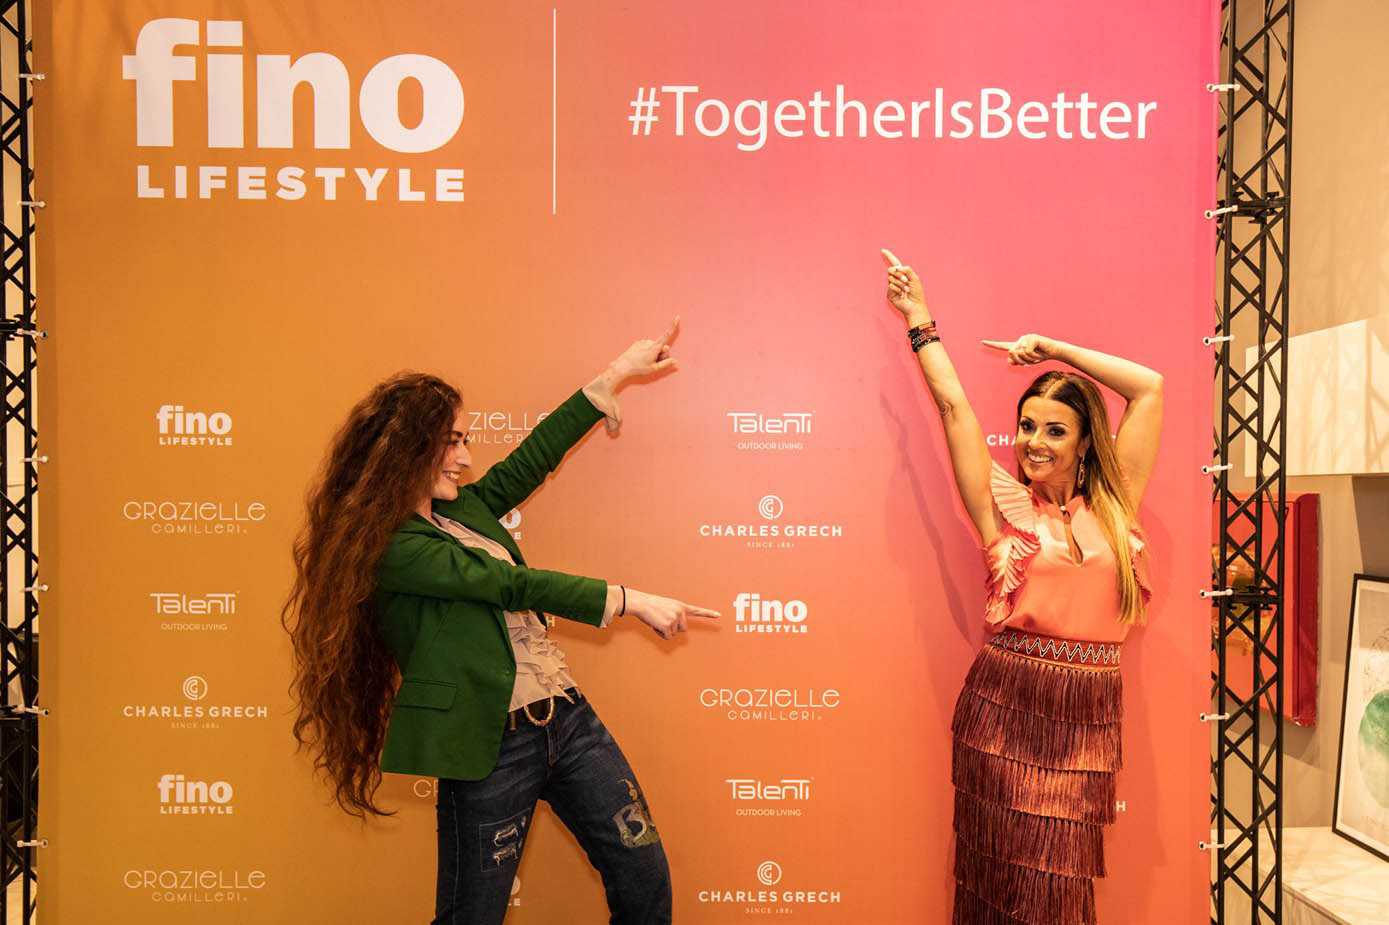 Second edition of the Social event #TogetherIsBetter was bigger and better!